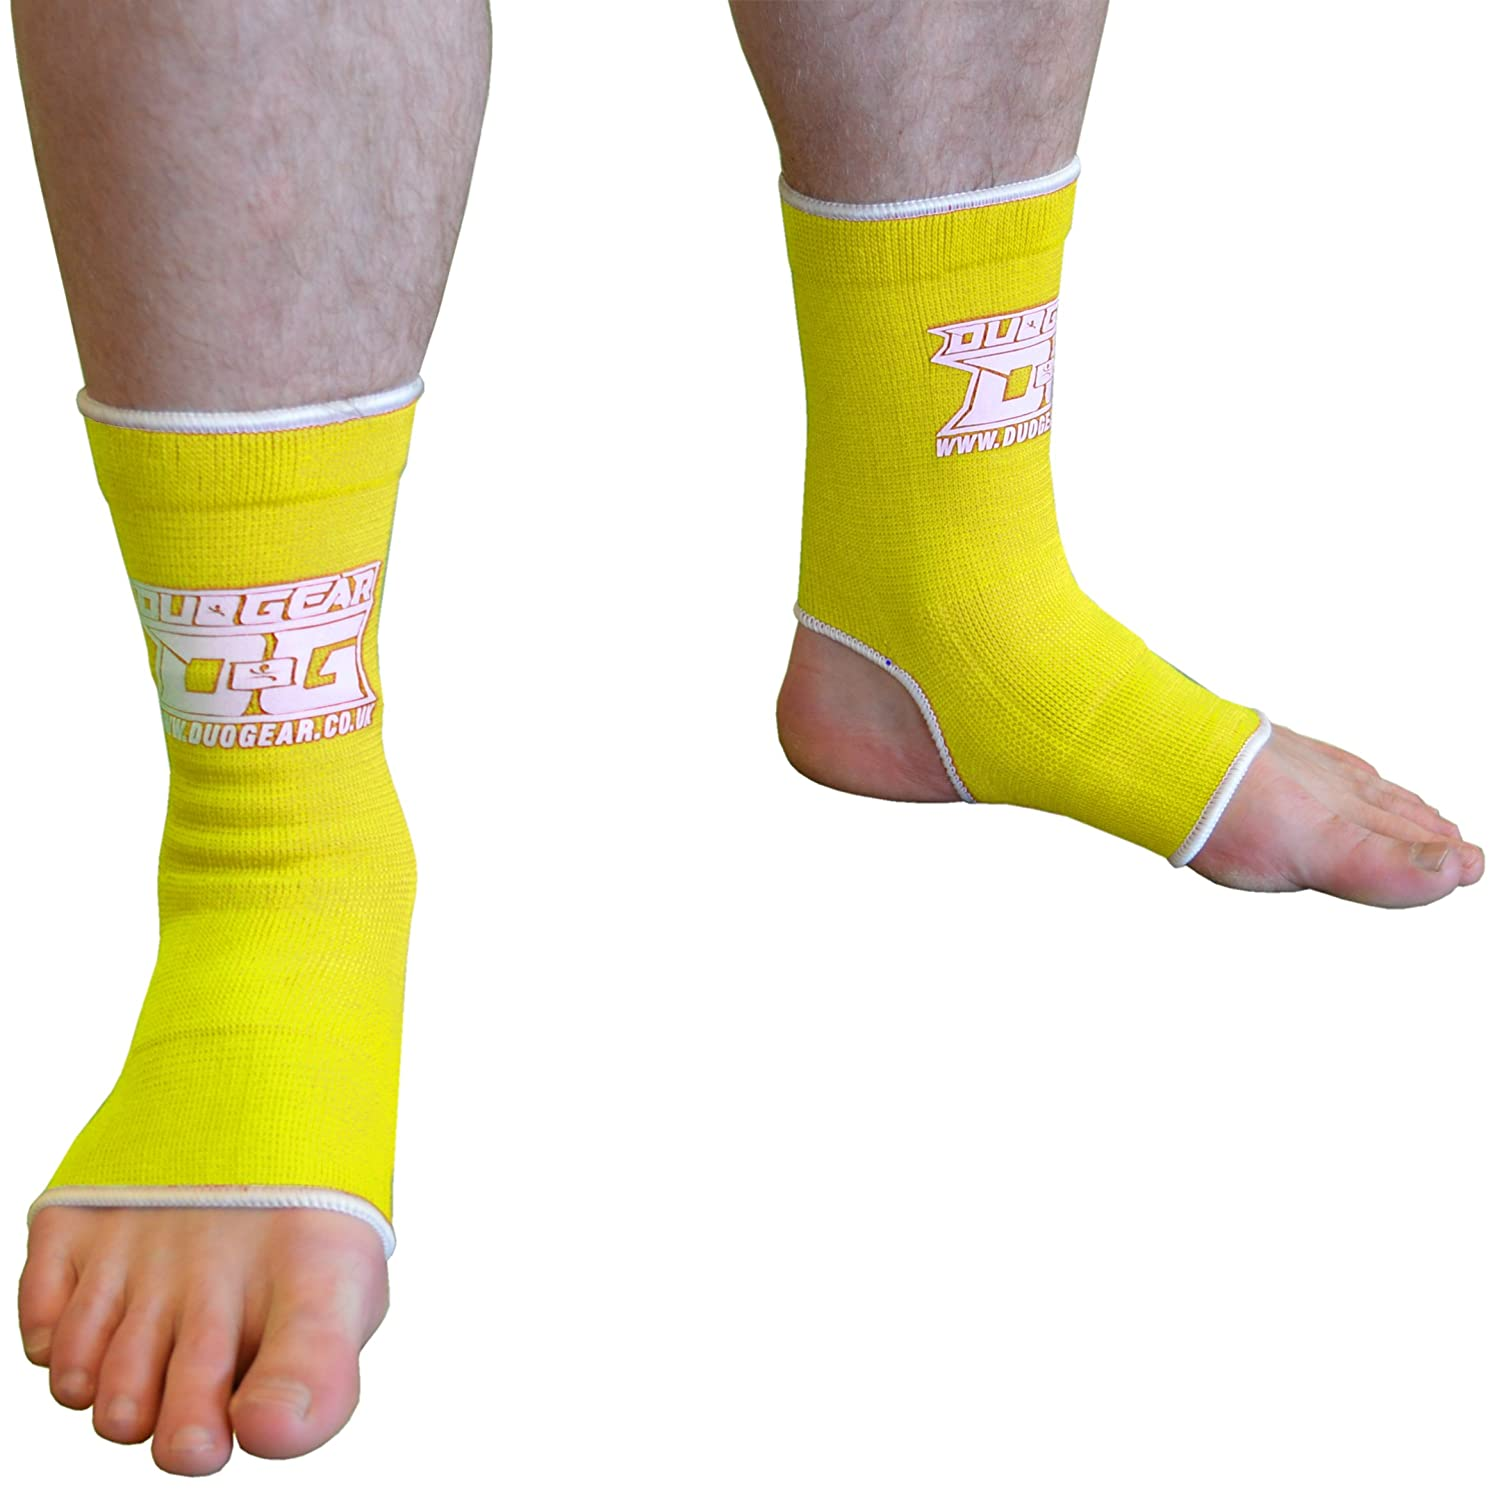 L BLUE DUO MUAY THAI KICKBOXING MARTIAL ARTS MMA SPORTS ANKLE SUPPORT ANKLETS Kids /– Adult